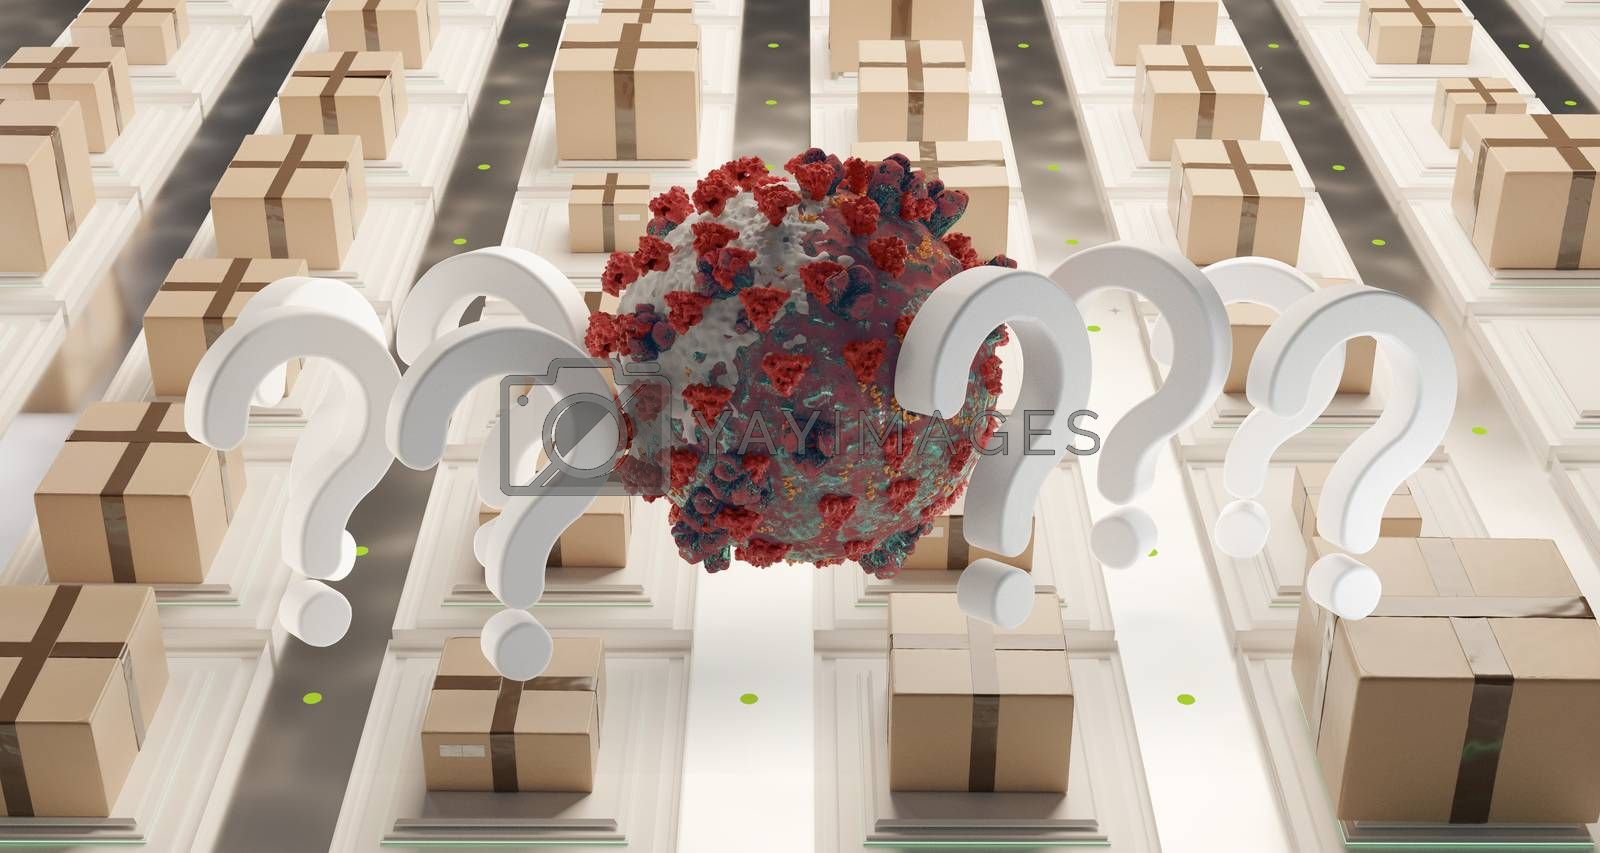 question marks packages Coronavirus Covid-19 symbolic 3d-illustration